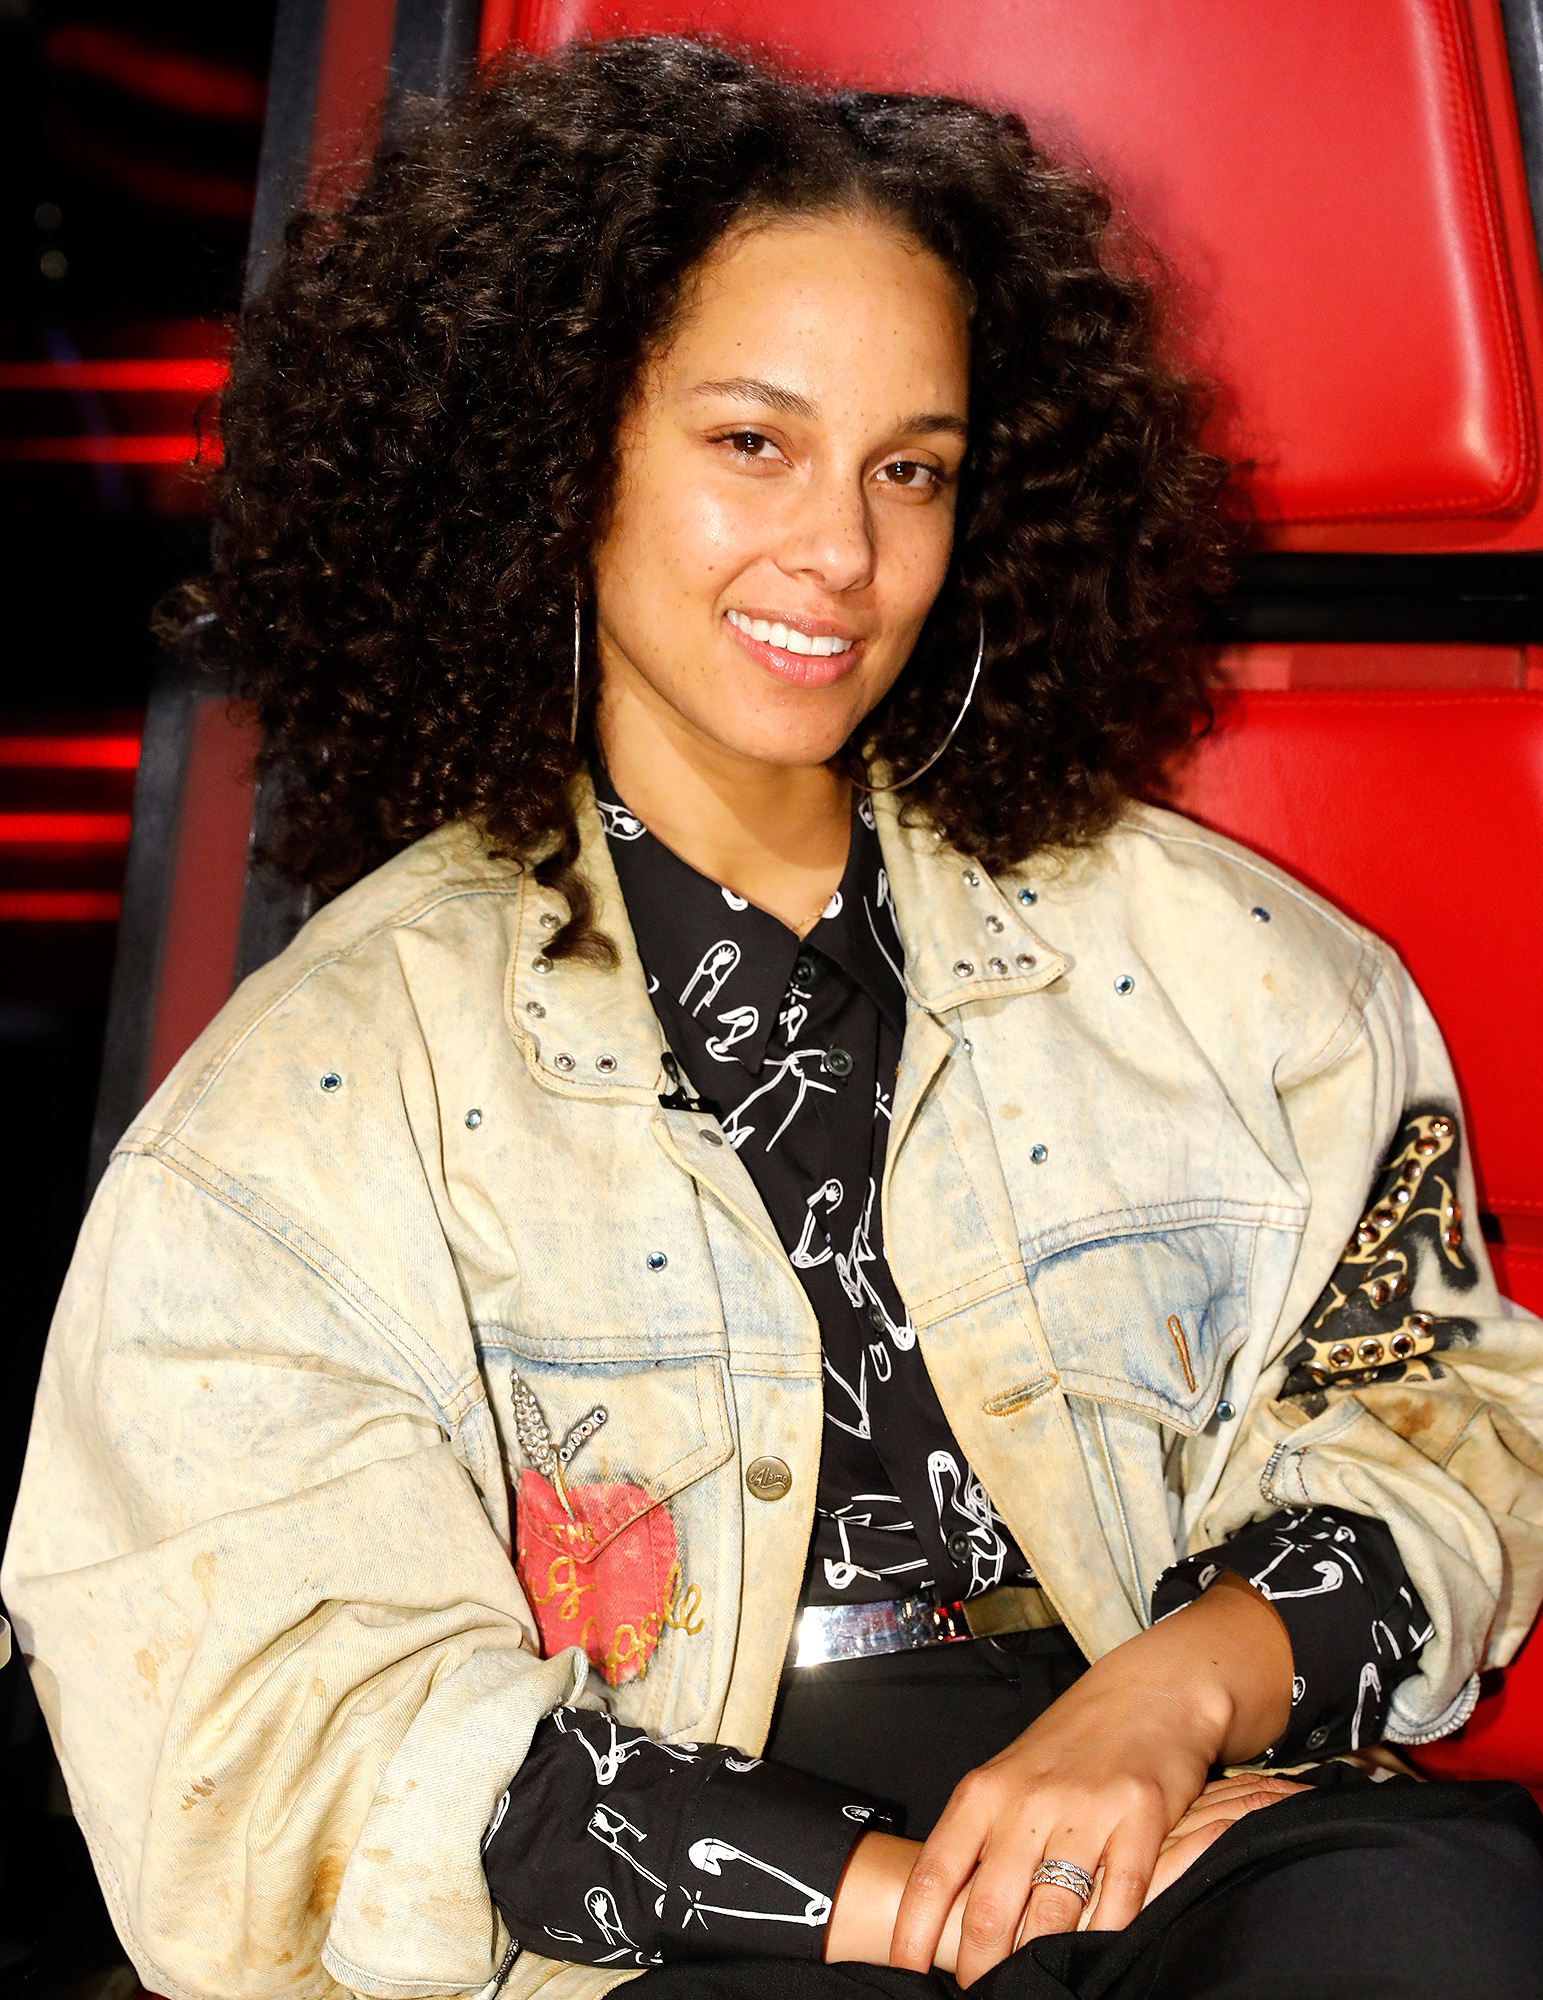 """THE VOICE -- """"Live Top 11"""" Episode: 1115A -- Pictured: Alicia Keys -- (Photo by: Trae Patton/NBC/NBCU Photo Bank via Getty Images)"""